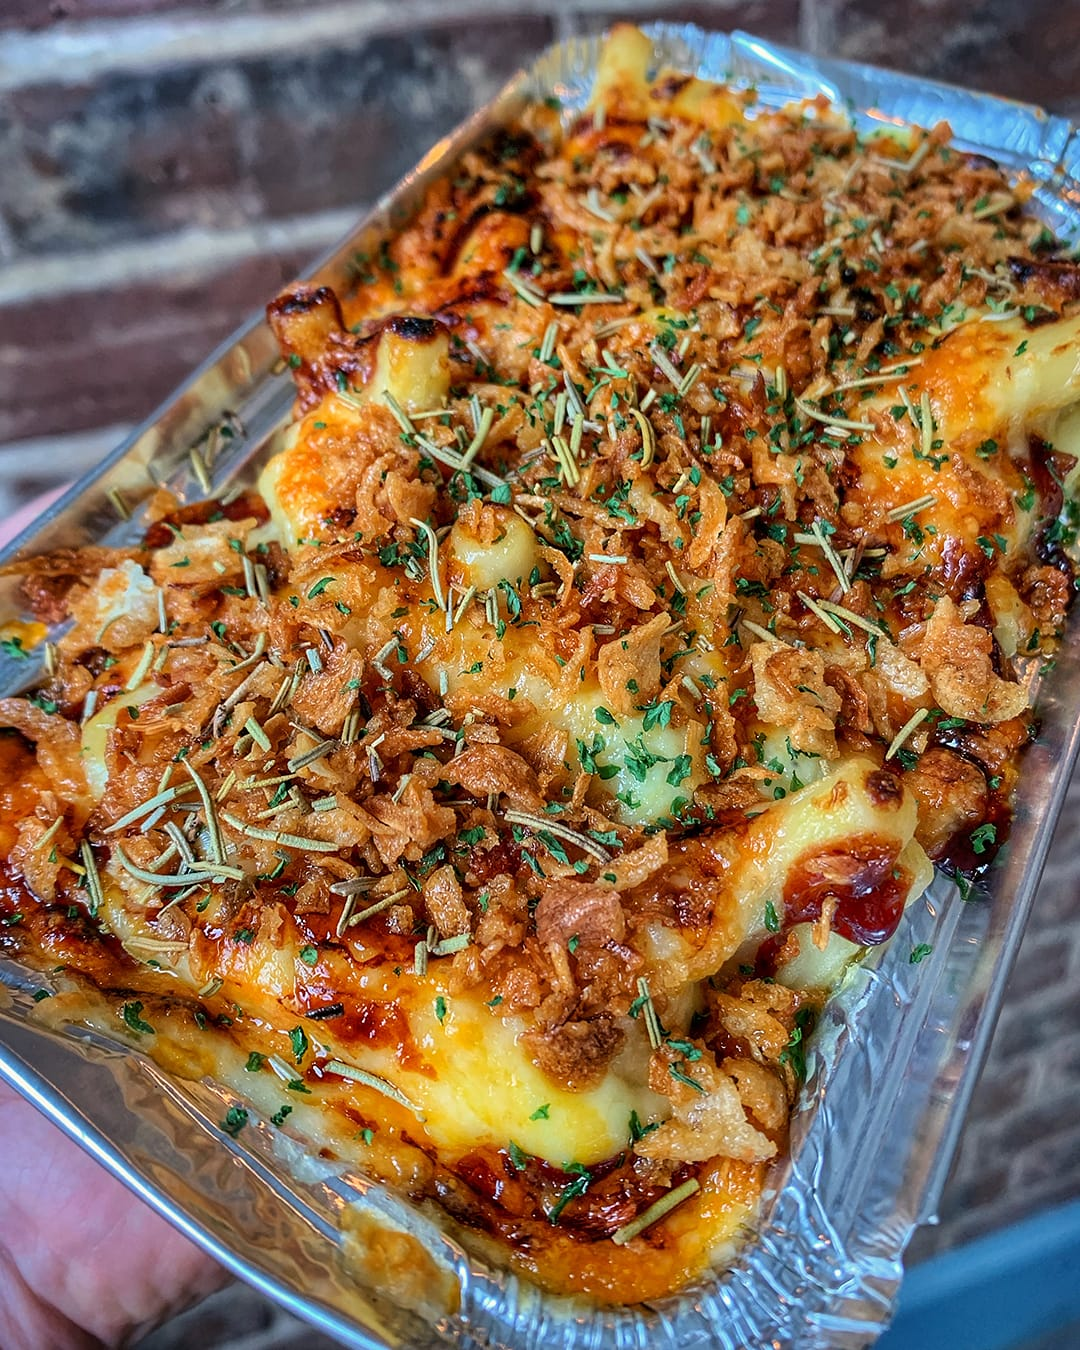 English Cheddar Crispy Shallots Mac and Cheese Need Street Food Merchant House Portsmouth